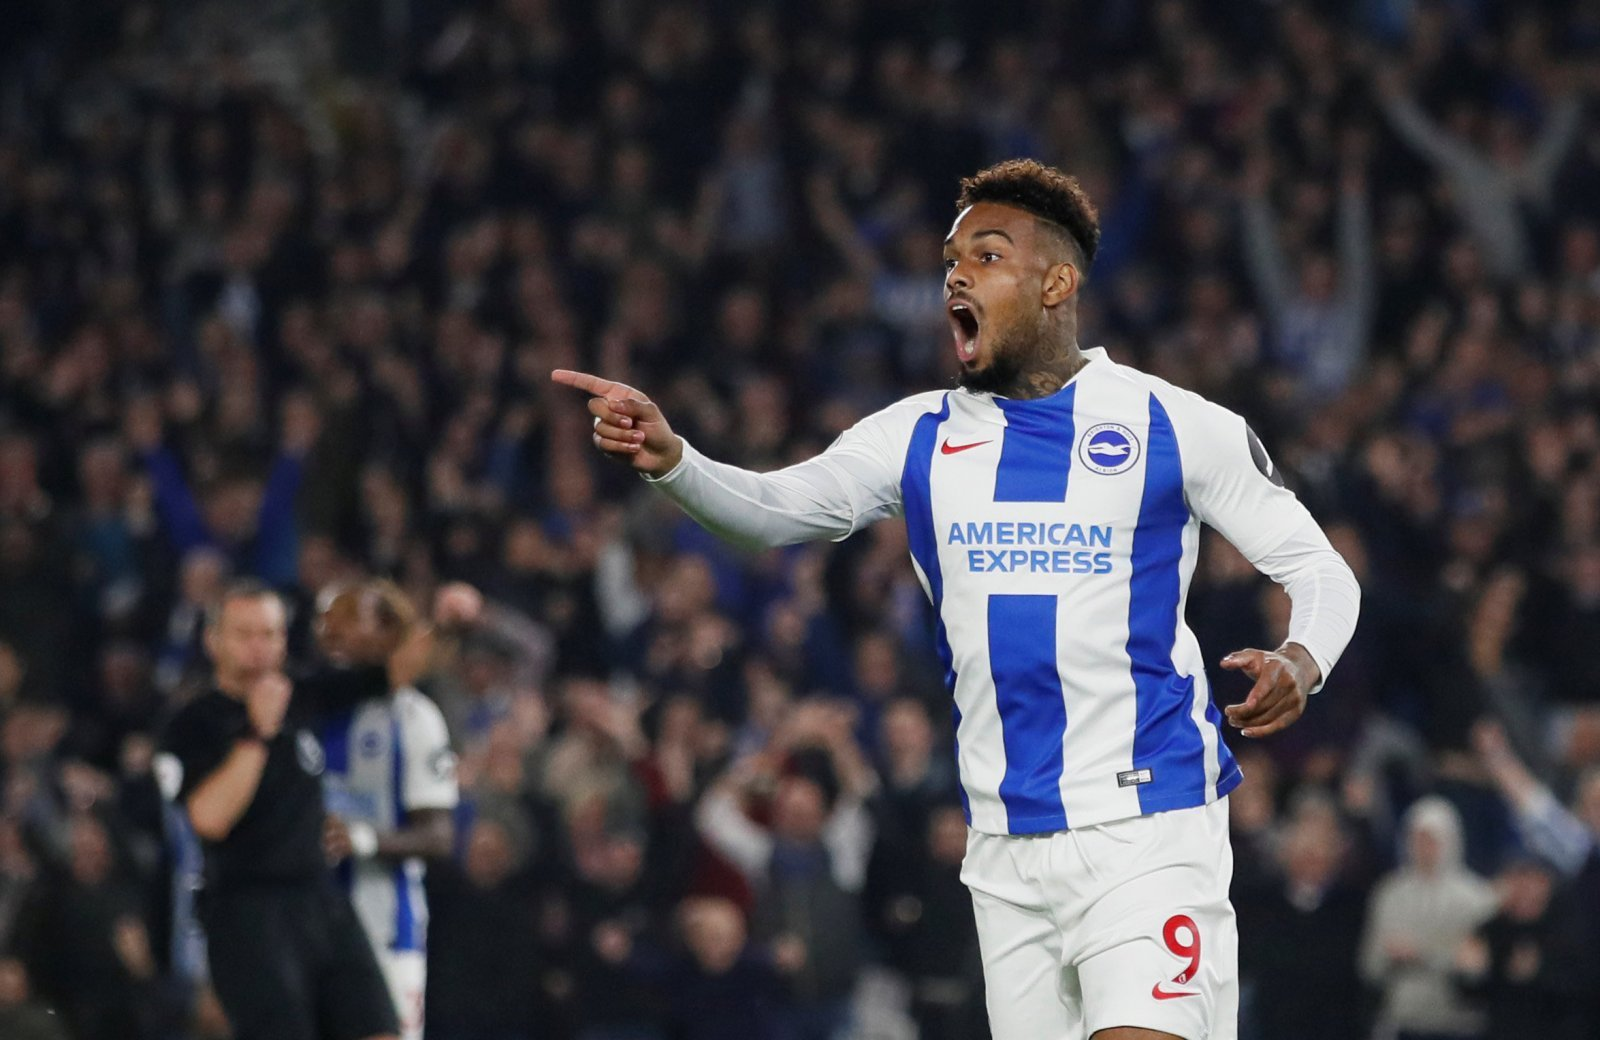 Brighton: Fans give mixed response to player departure